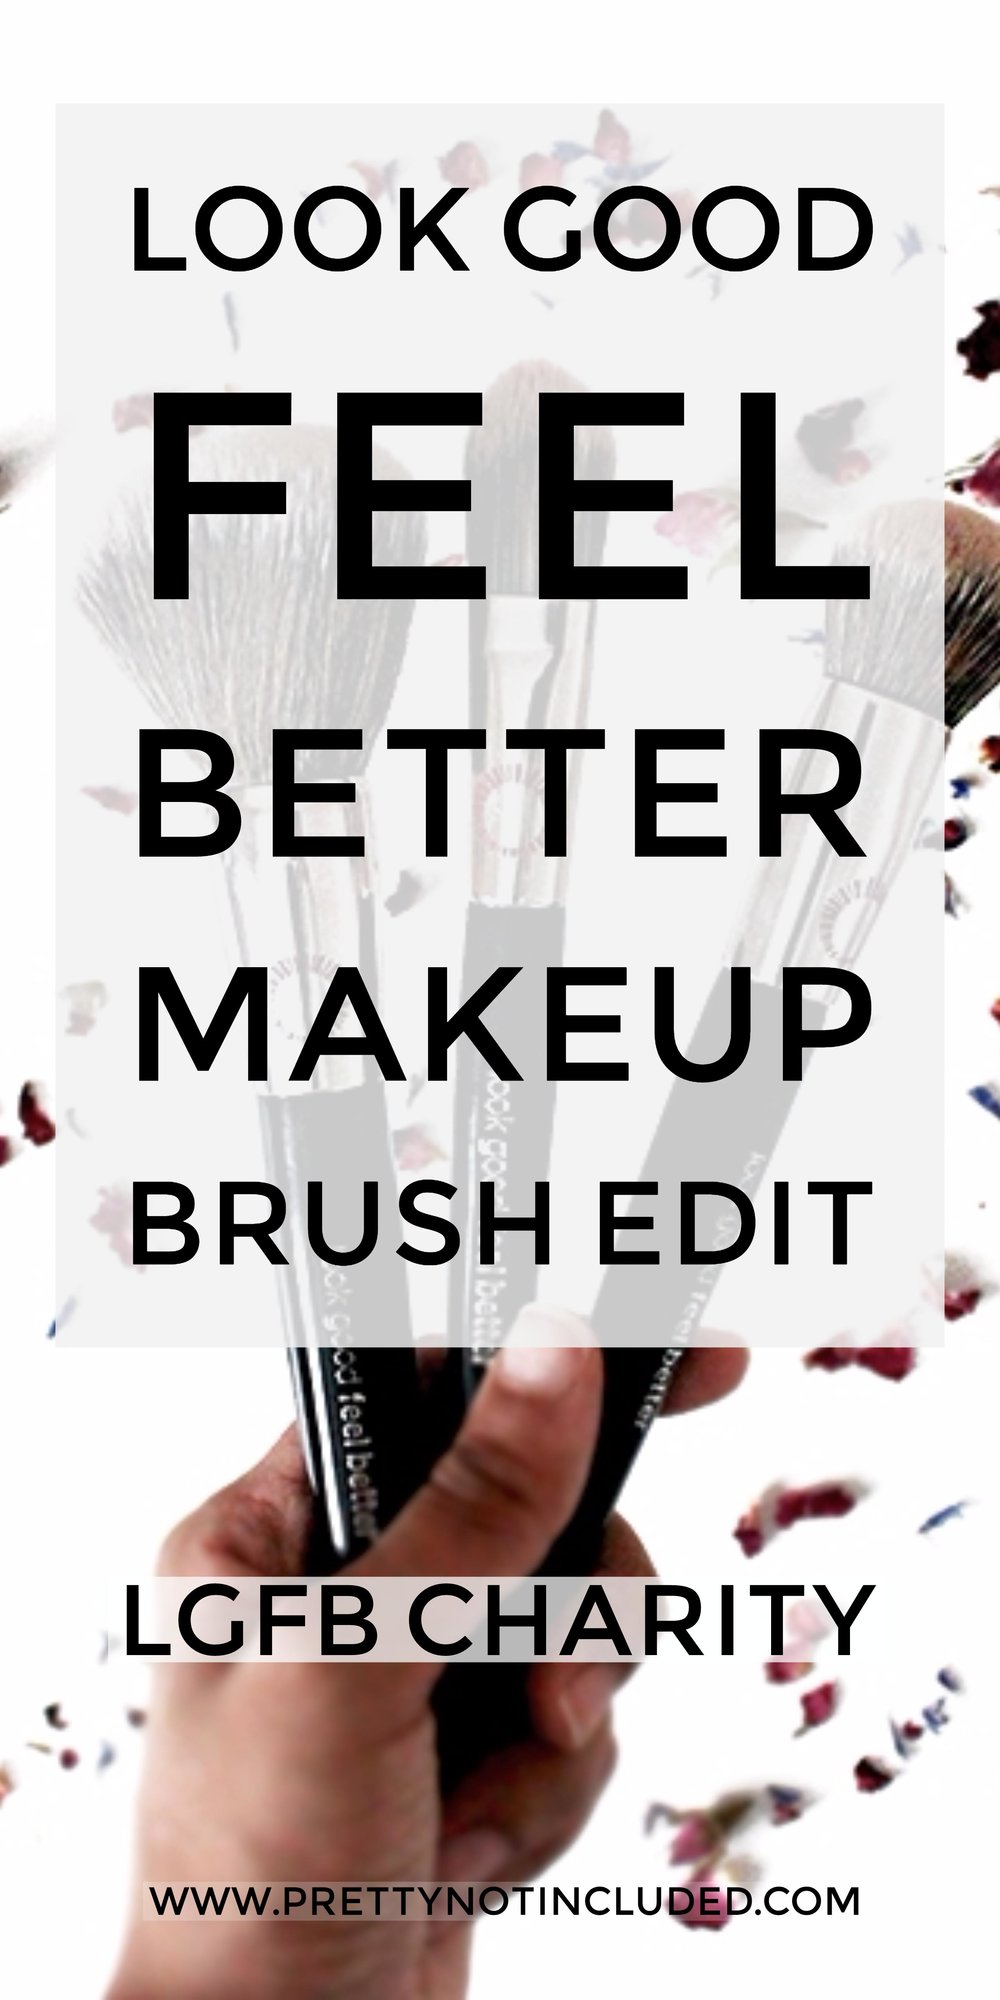 Full Coverage Makeup Routine With Look Good Feel Better Makeup Brushes | 8-12% of wholesale proceeds go towards the LGFB charity that helps women and teens going through cancer treatment by hosting free skincare and makeup workshops to help boost confidence.